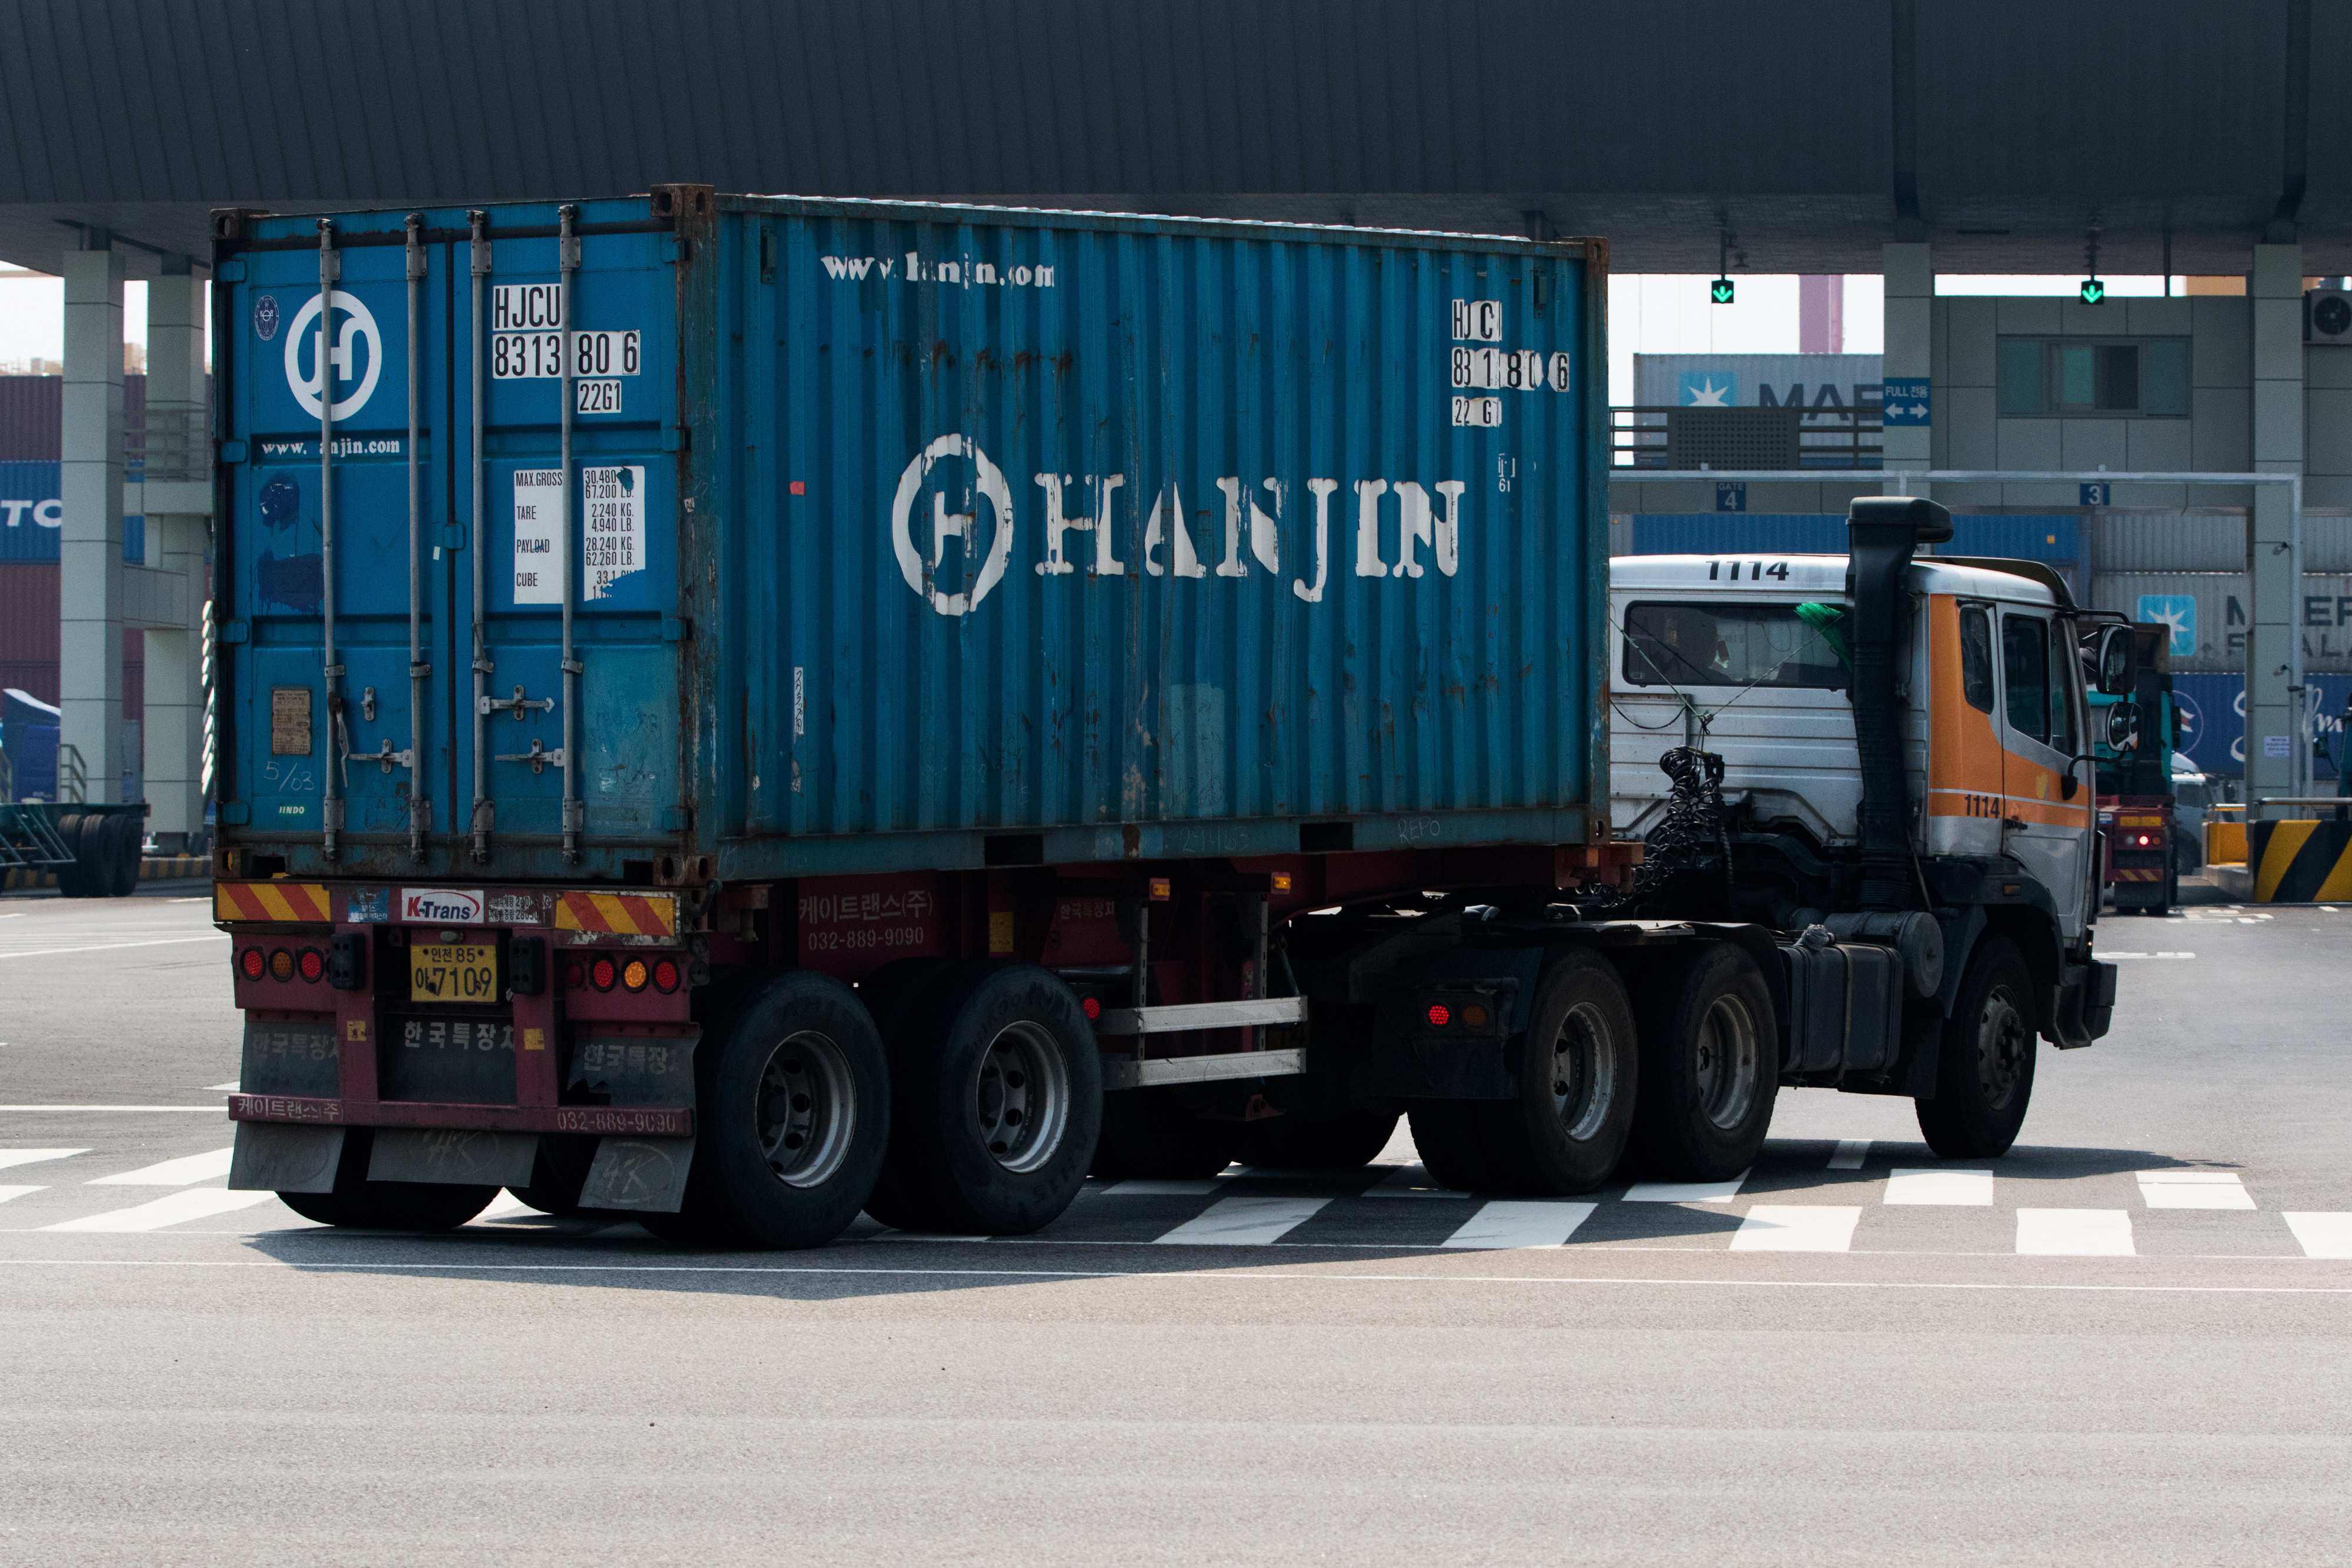 Views of Hanjin Shipping Co. Headquarters And Port Area As Company's Ships Get Stranded In High Sea